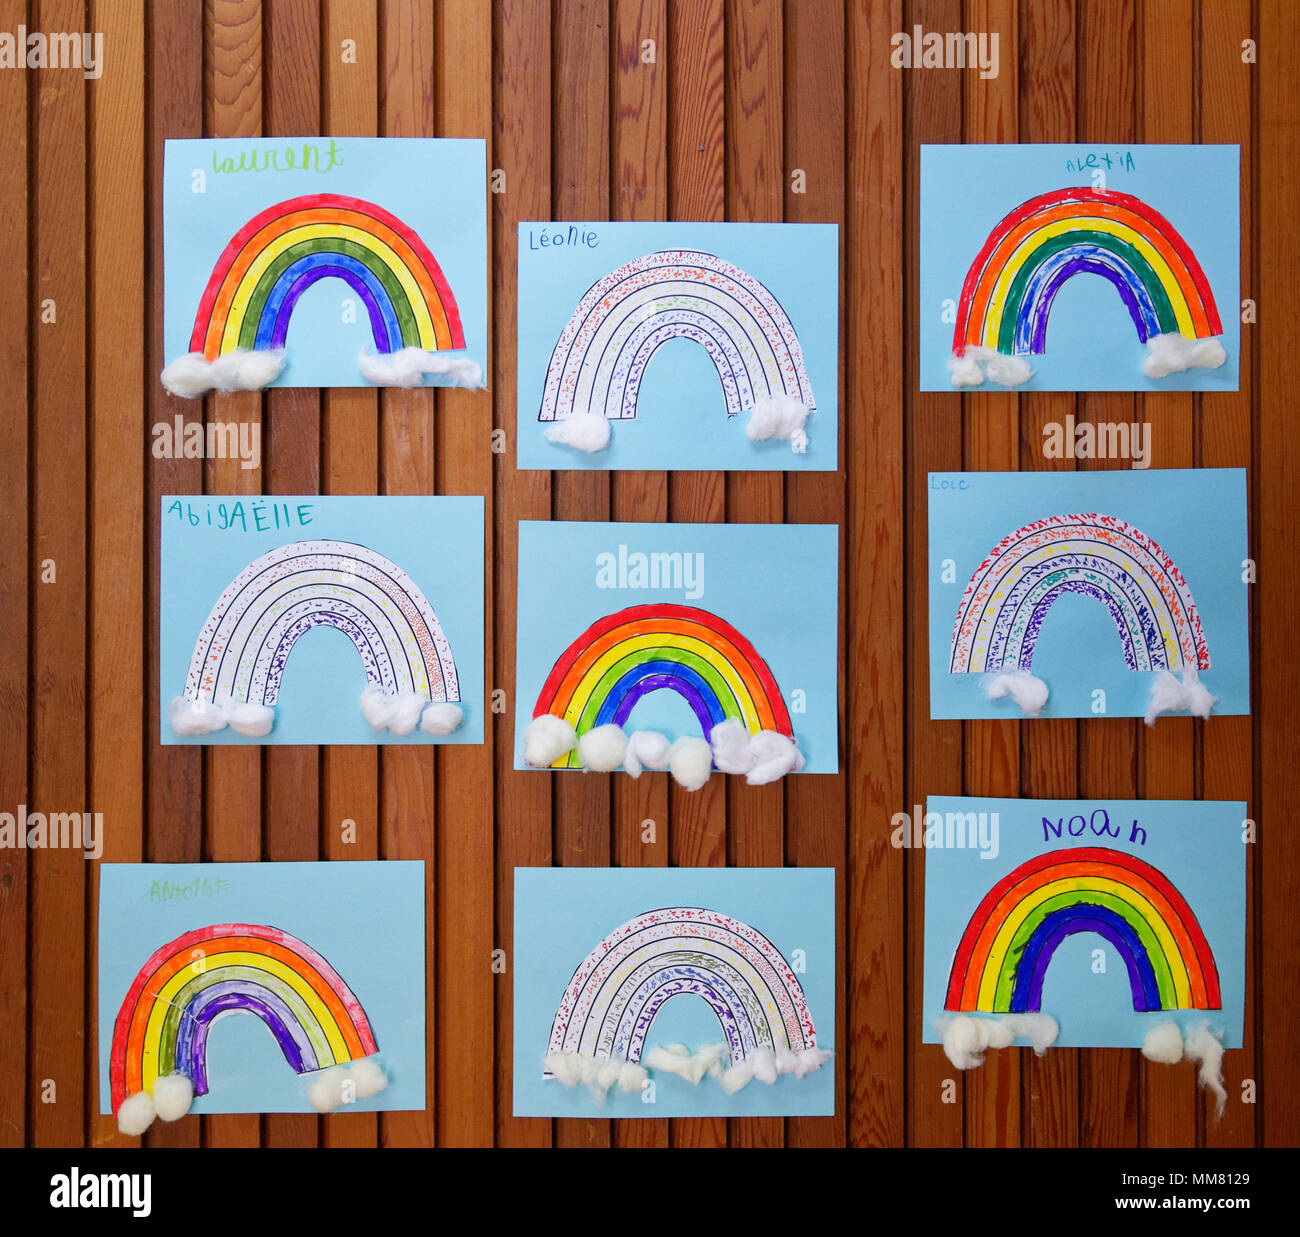 Children's art works on the wall in their school - rainbows - Stock Image